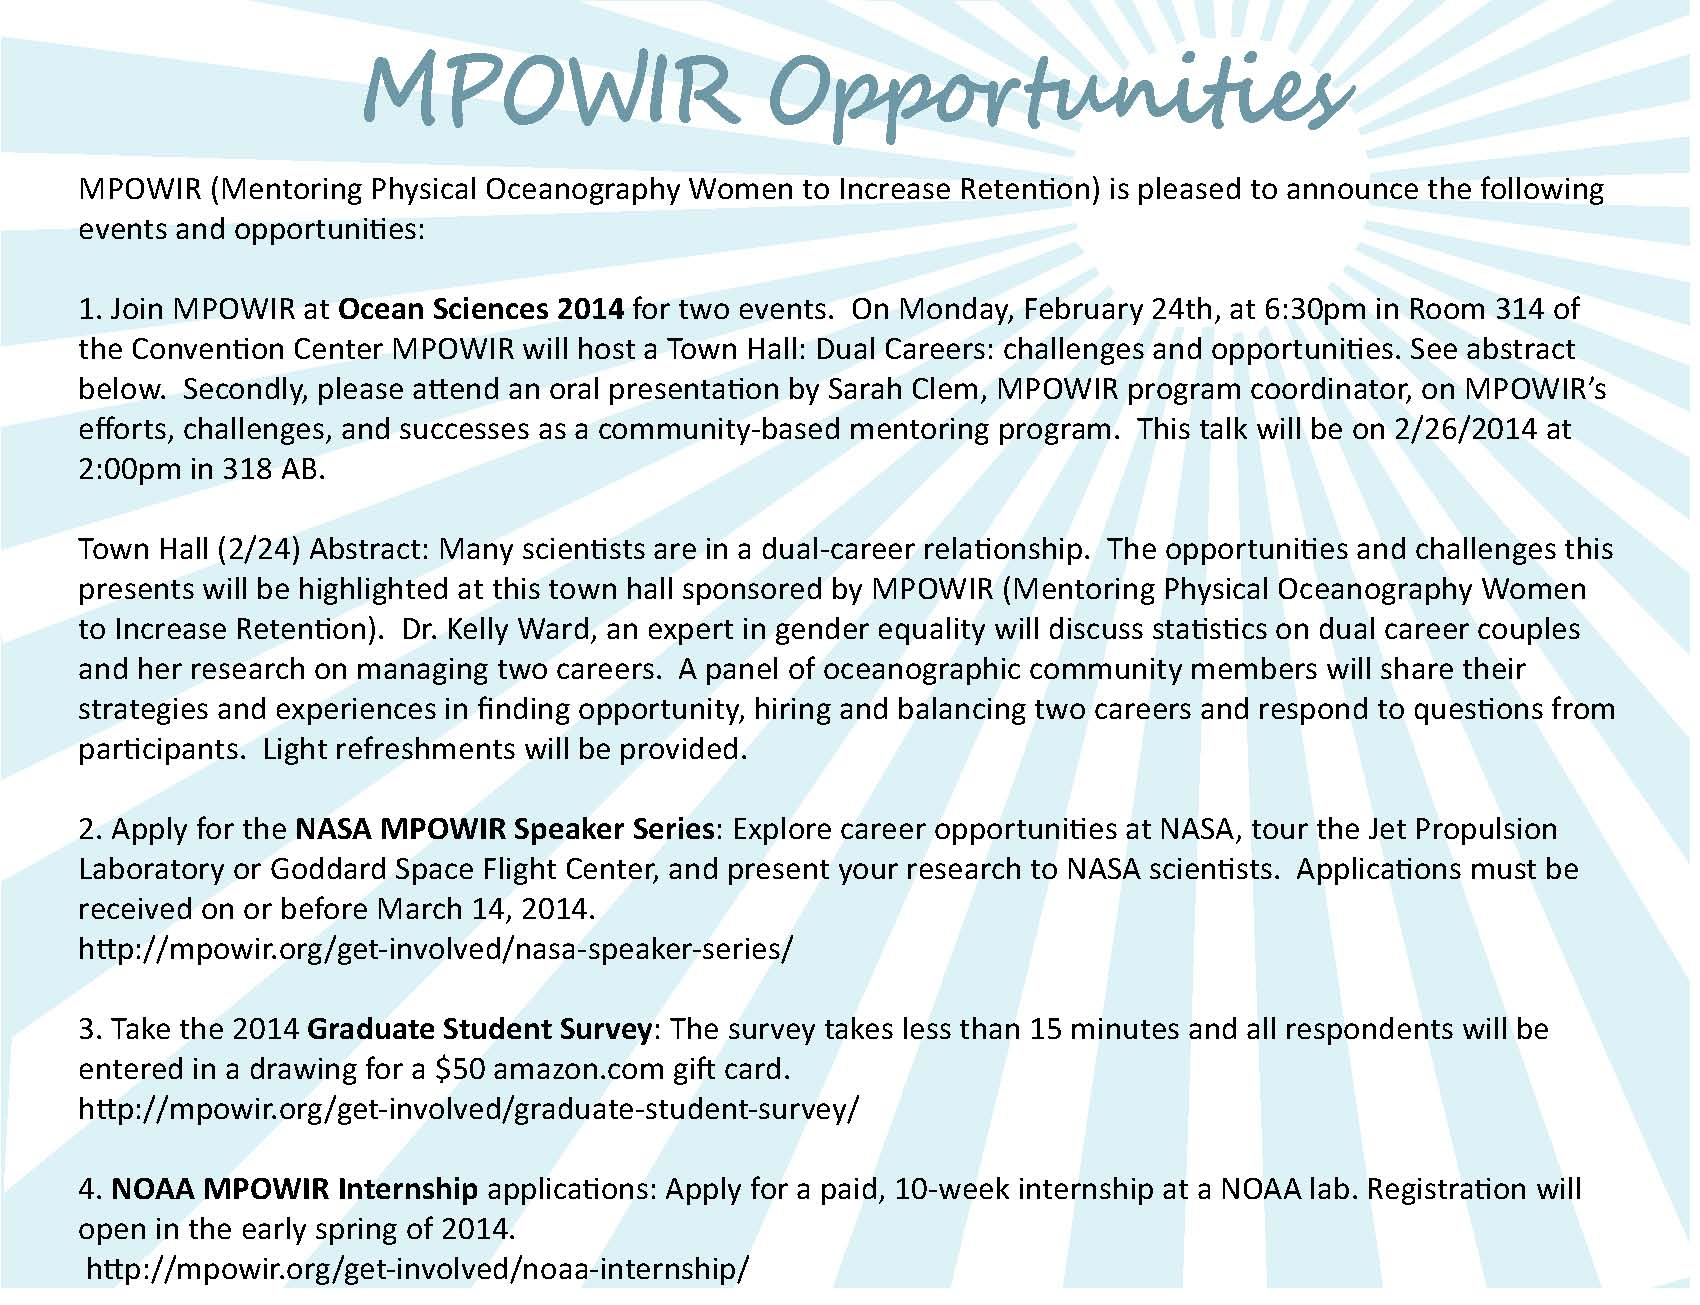 MPOWIR opportunities